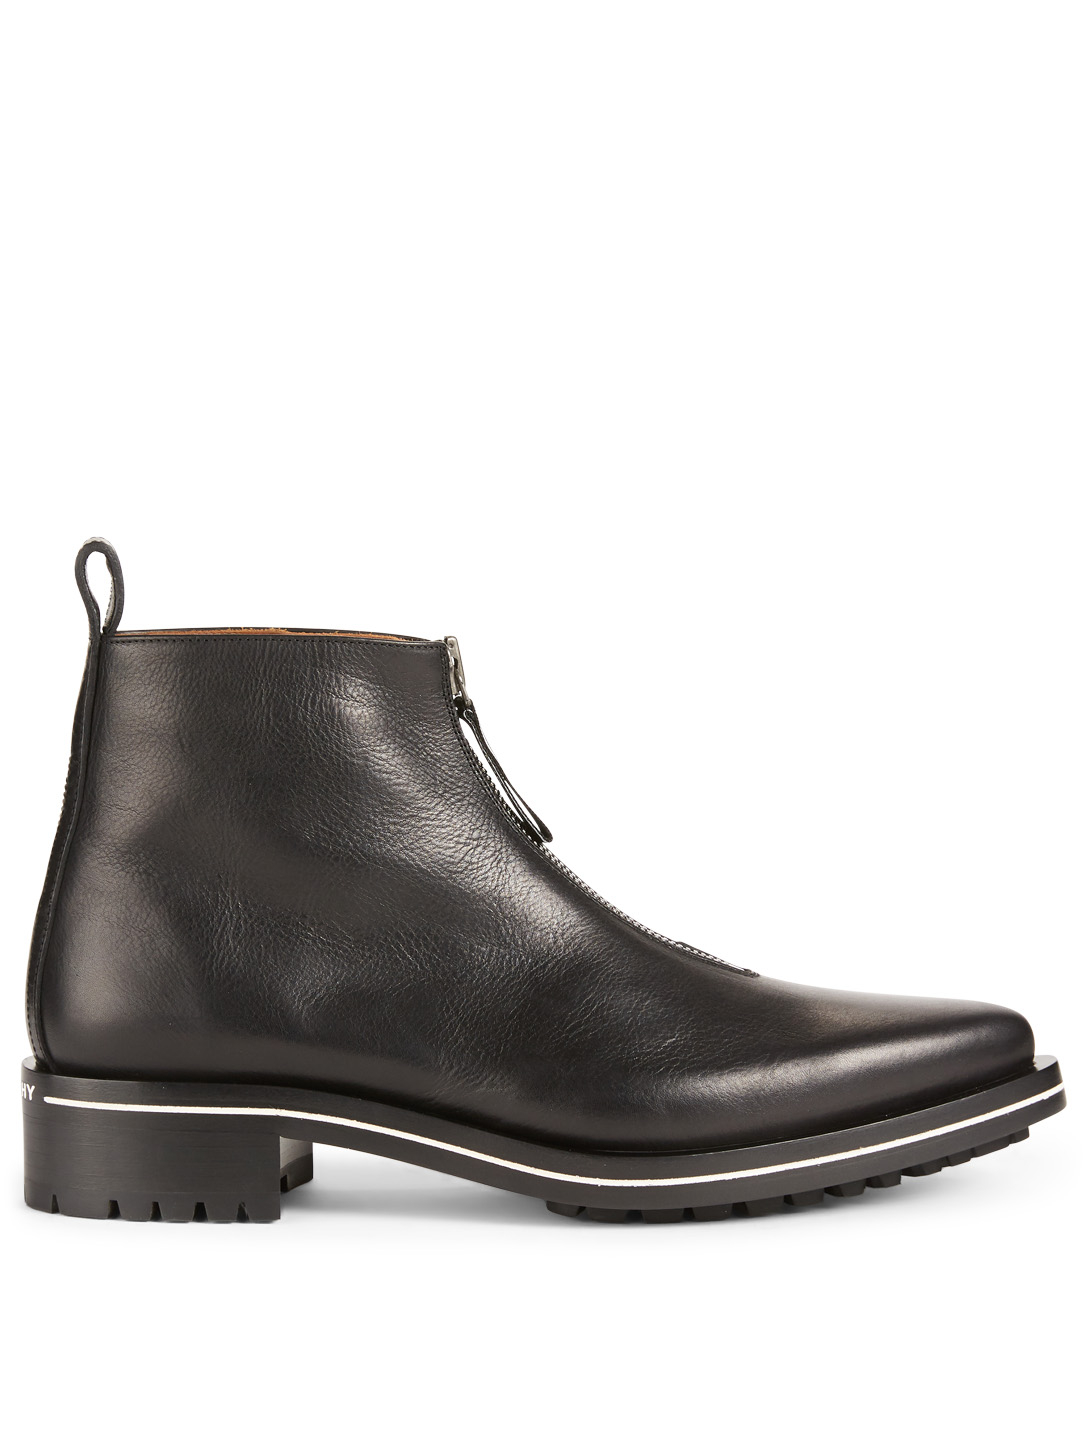 GIVENCHY Richmond Zipped Leather Boot Men's Black